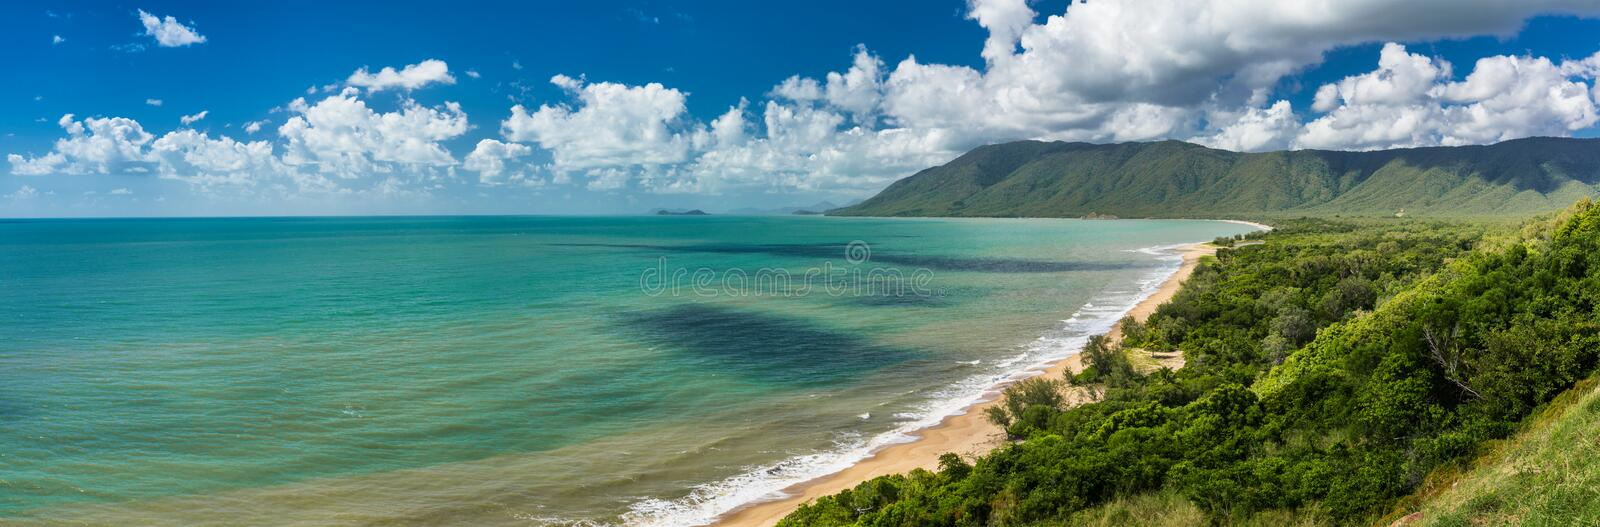 Daintree Cape Tribulation - sunny beach on Australian Coast in Q. View of Daintree Cape Tribulation - sunny beach on Australian Coast in Queensland stock photos